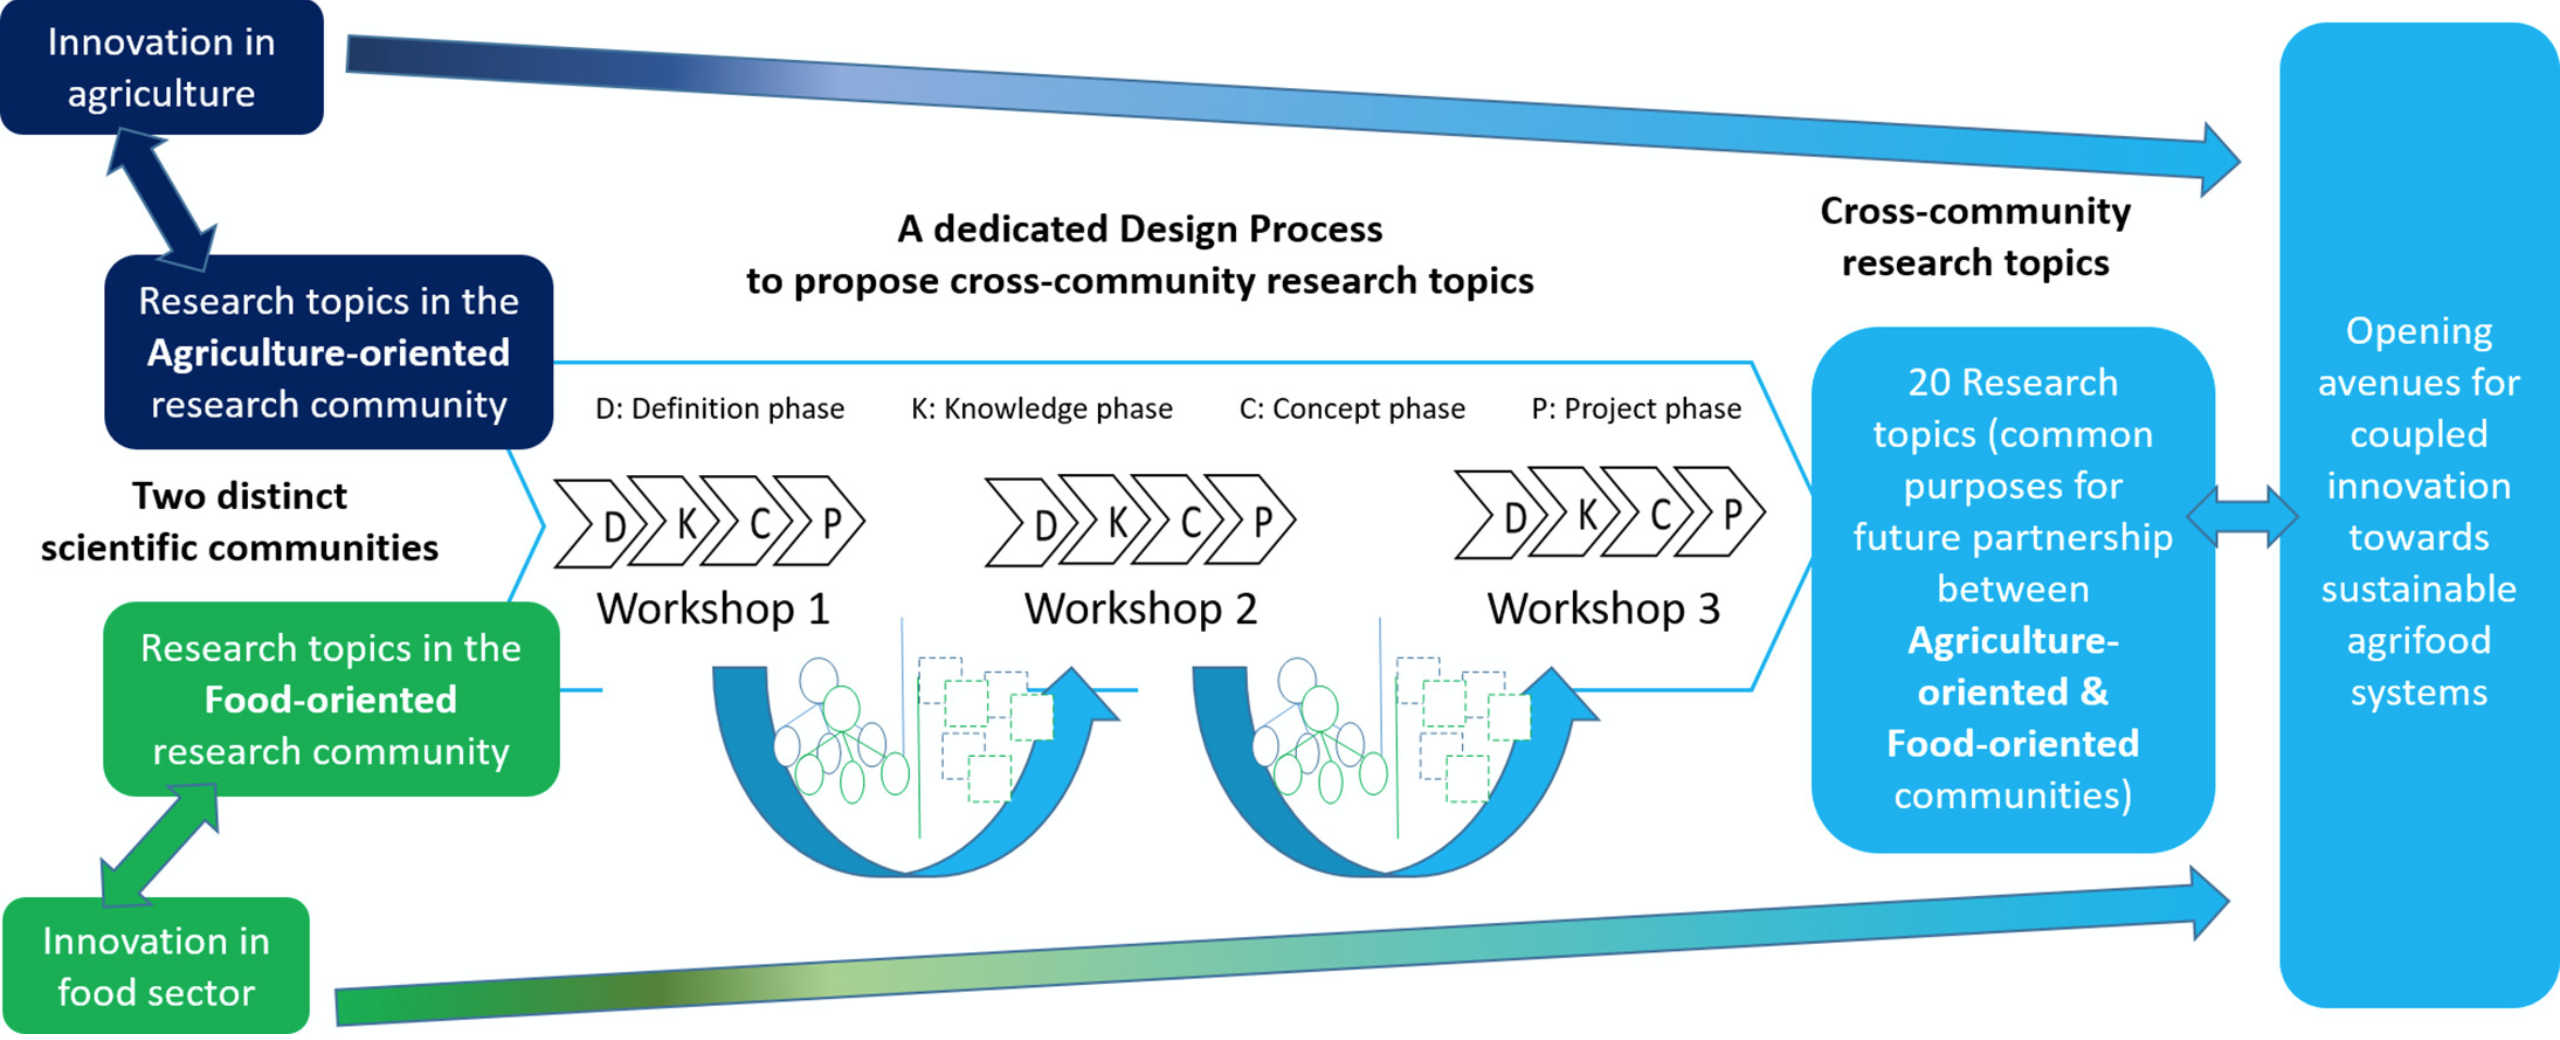 Graphical abstract - Designing a research agenda for coupled innovation towards sustainable agrifood systems - publi INDISS